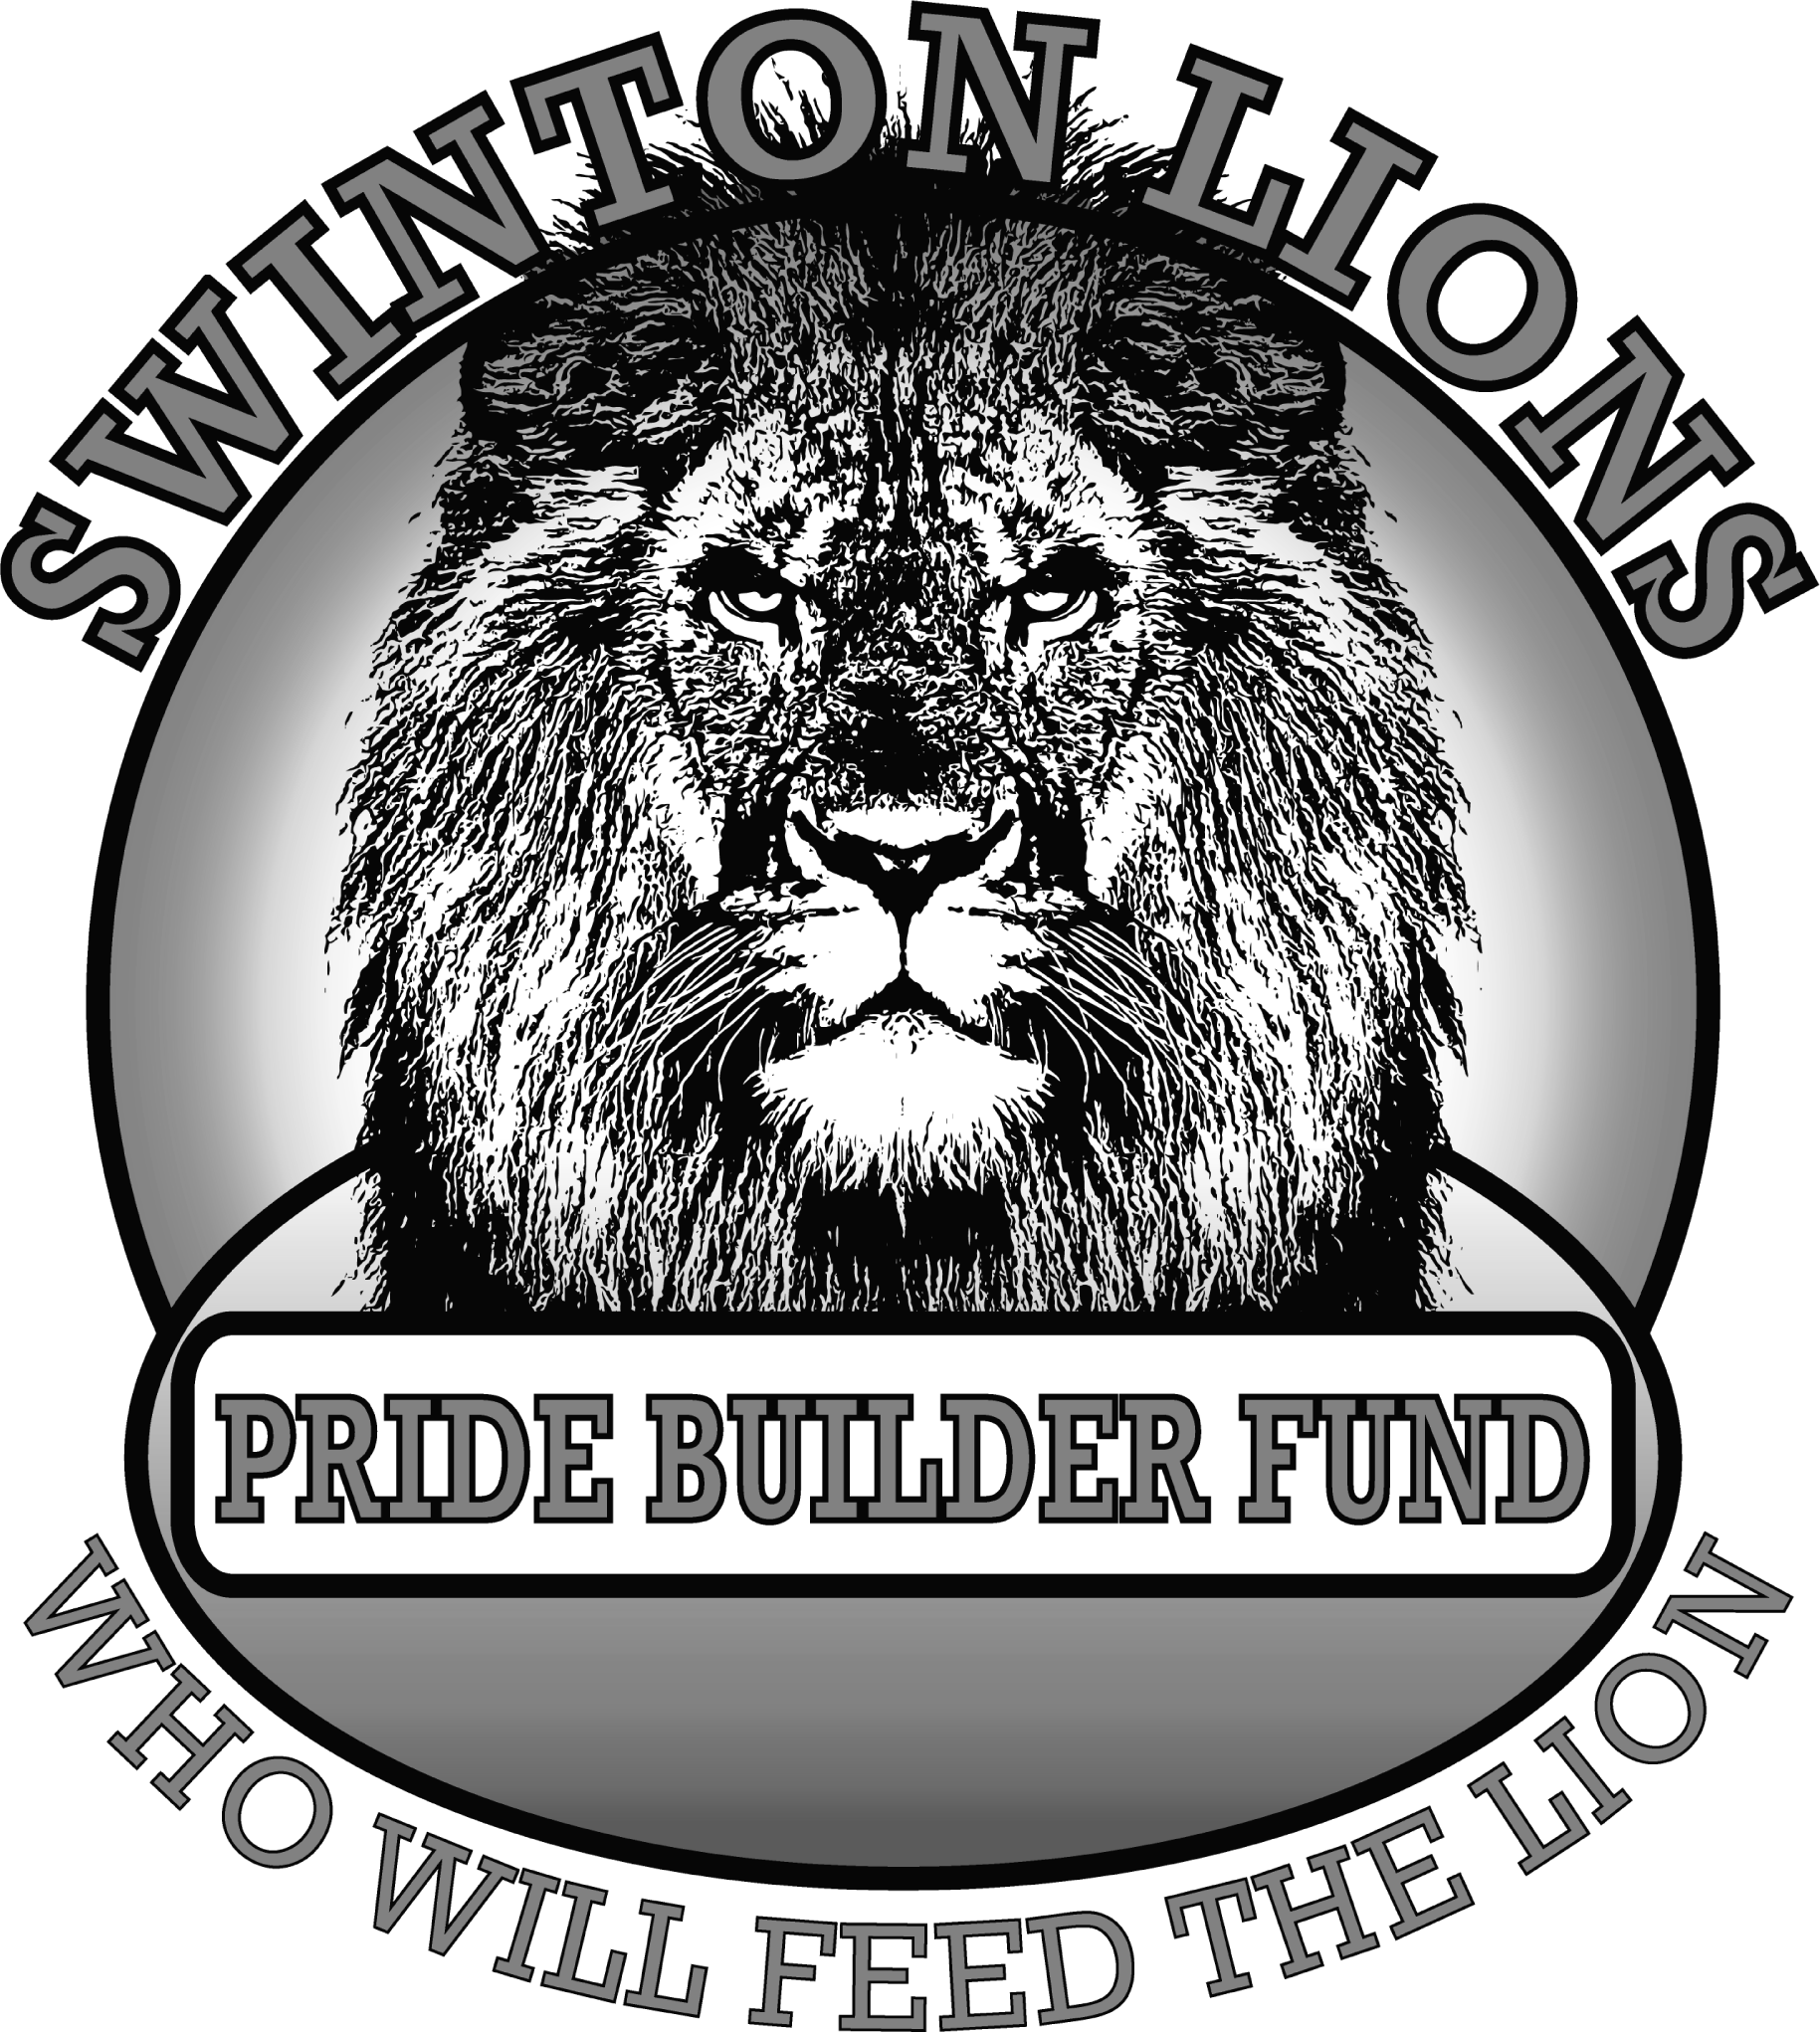 We're sponsored by Pride Builder Fund